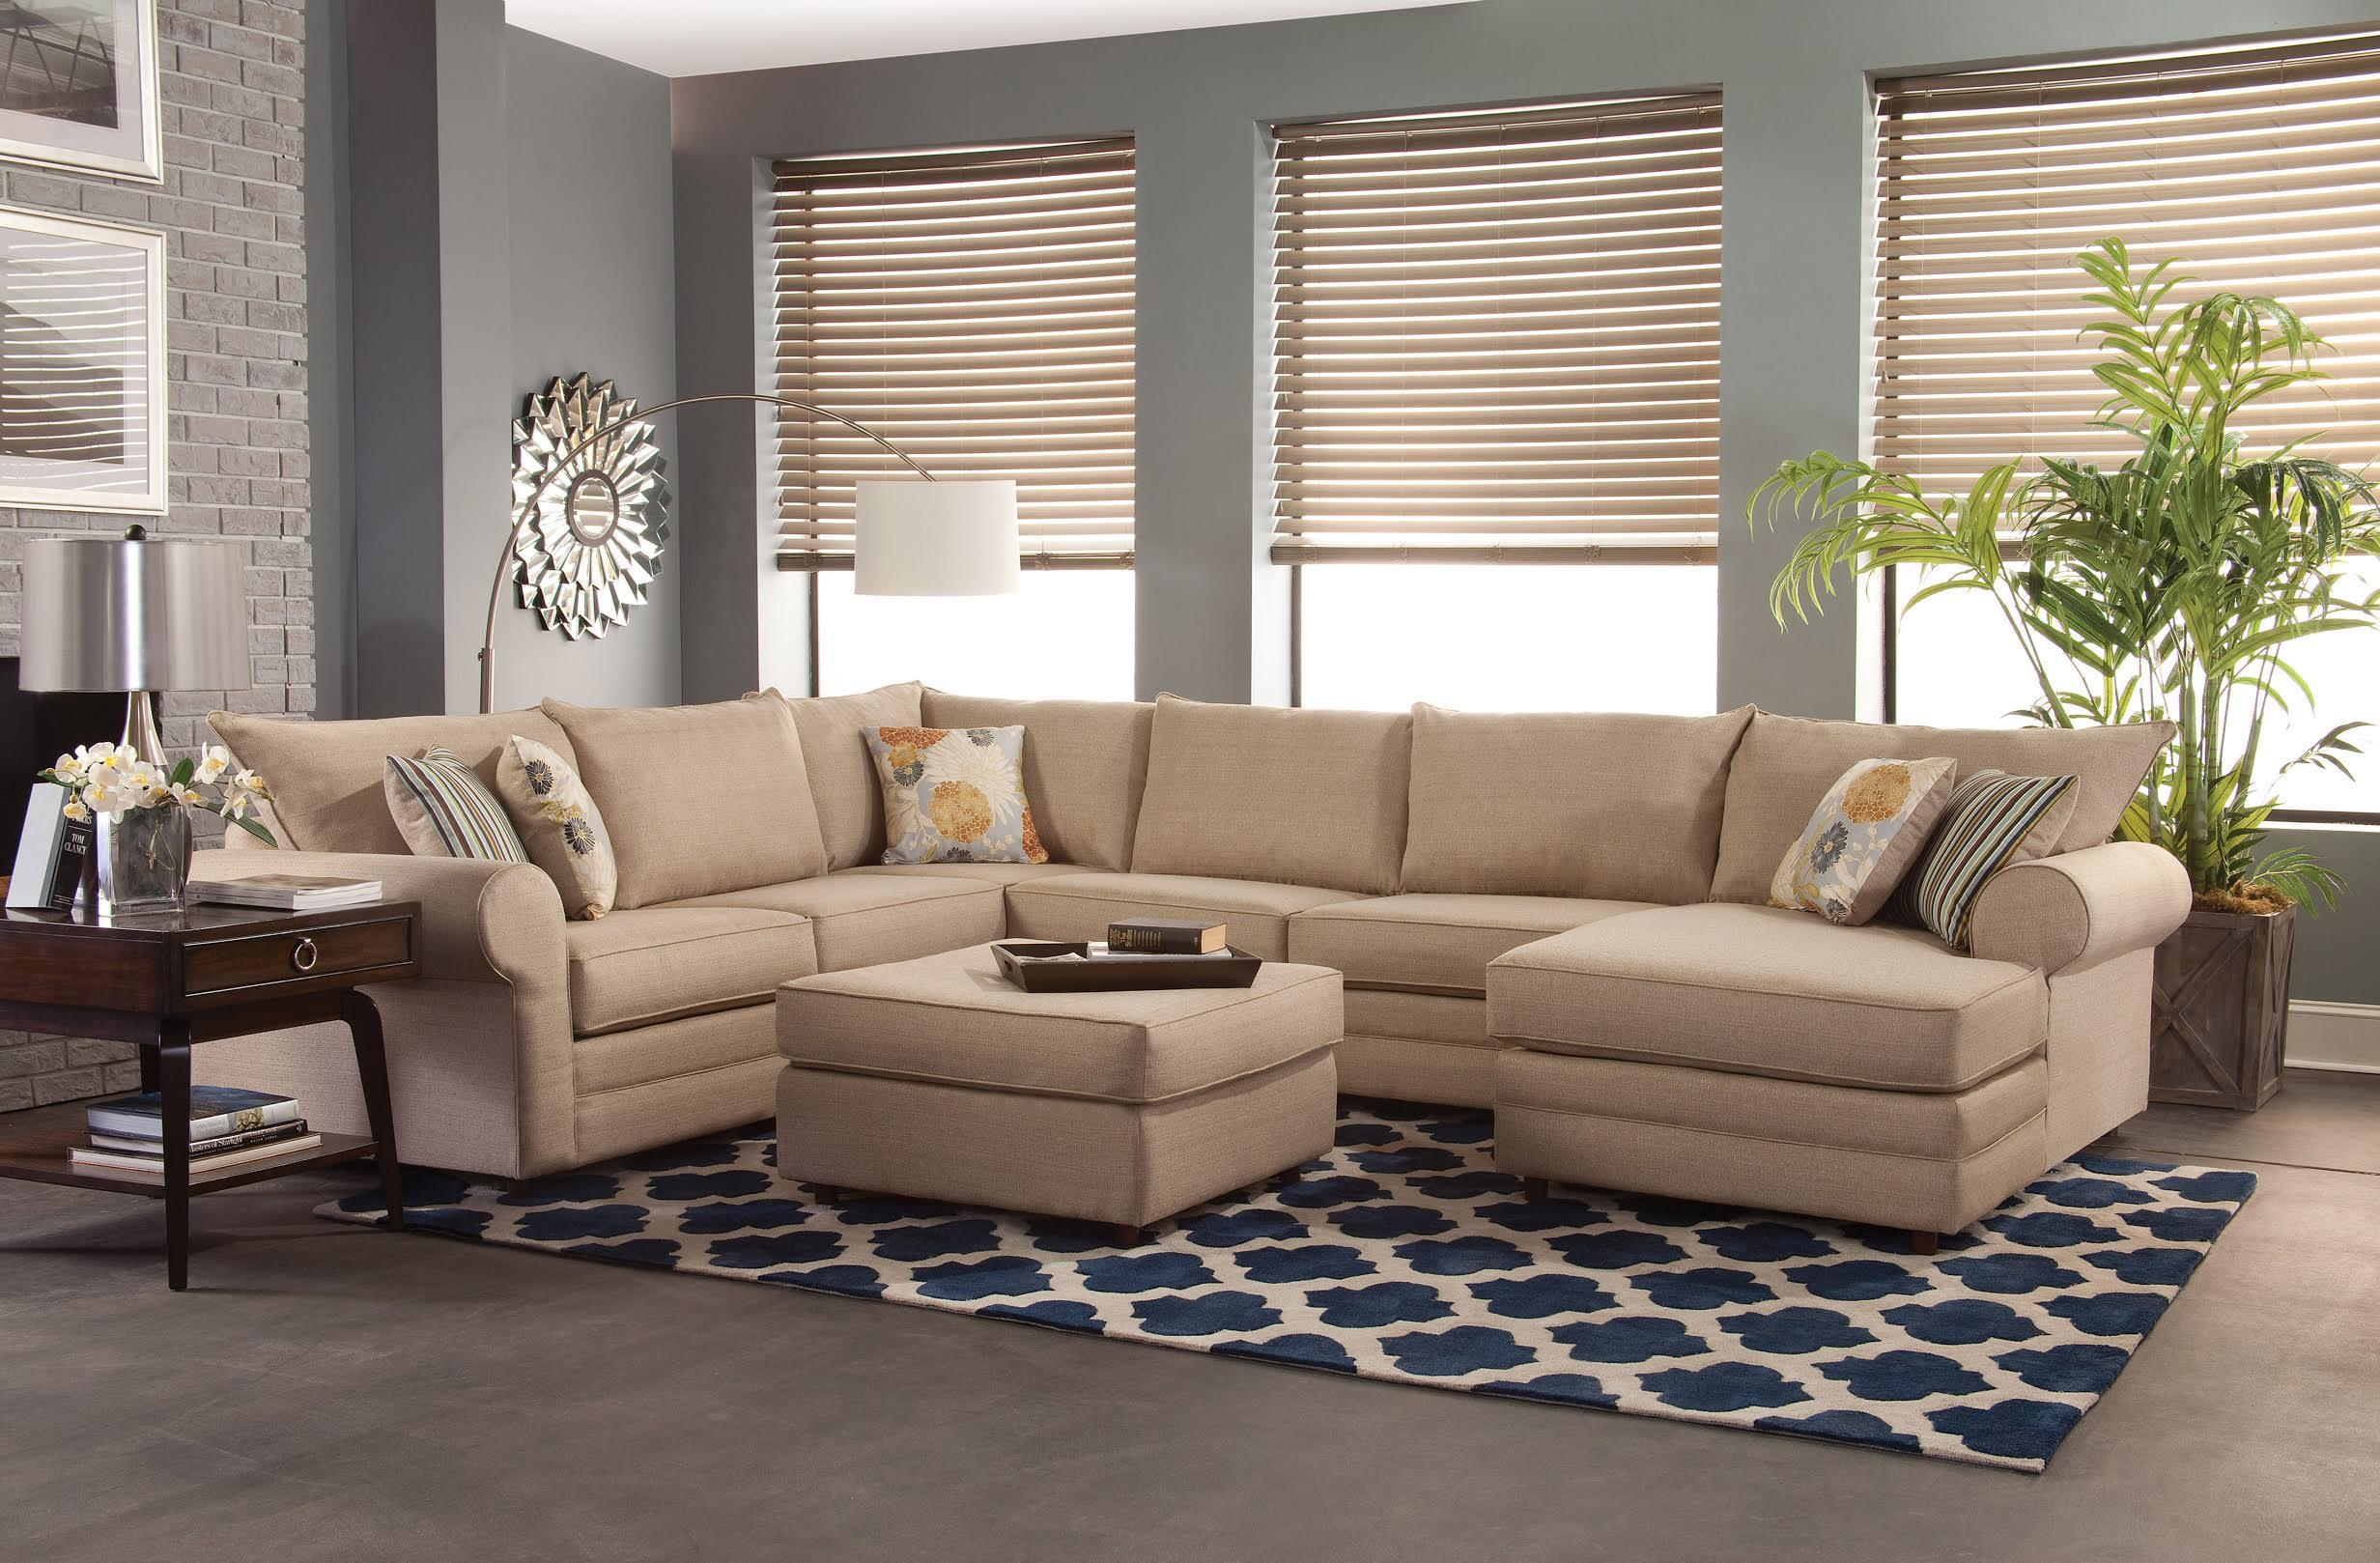 Best Furniture Stores In Northern Va Monticello Casual Sectional Sofa With Chaise By Belfort Essentials At Belfort Furniture